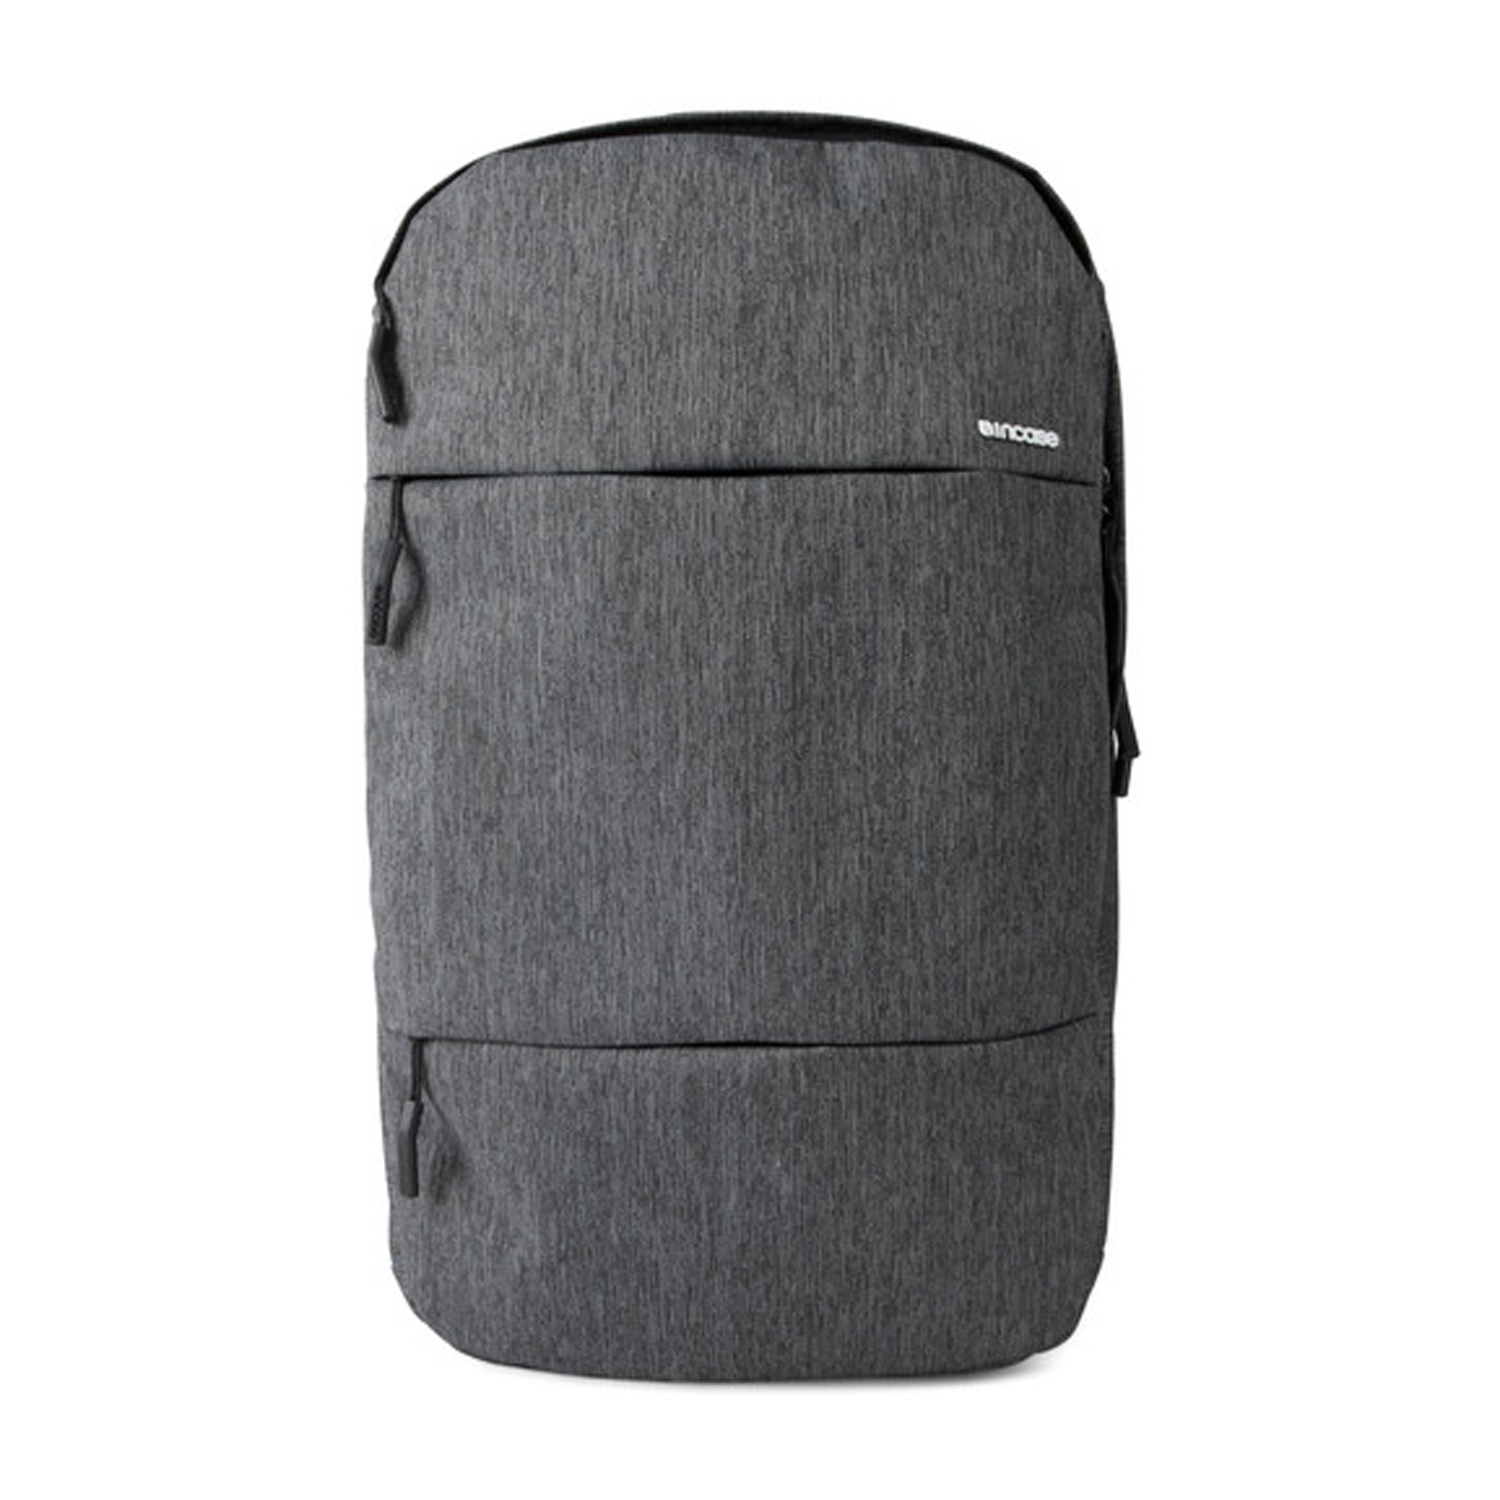 9b57e74387be Buy Incase Backpacks Singapore   Malaysia - The Planet Traveller